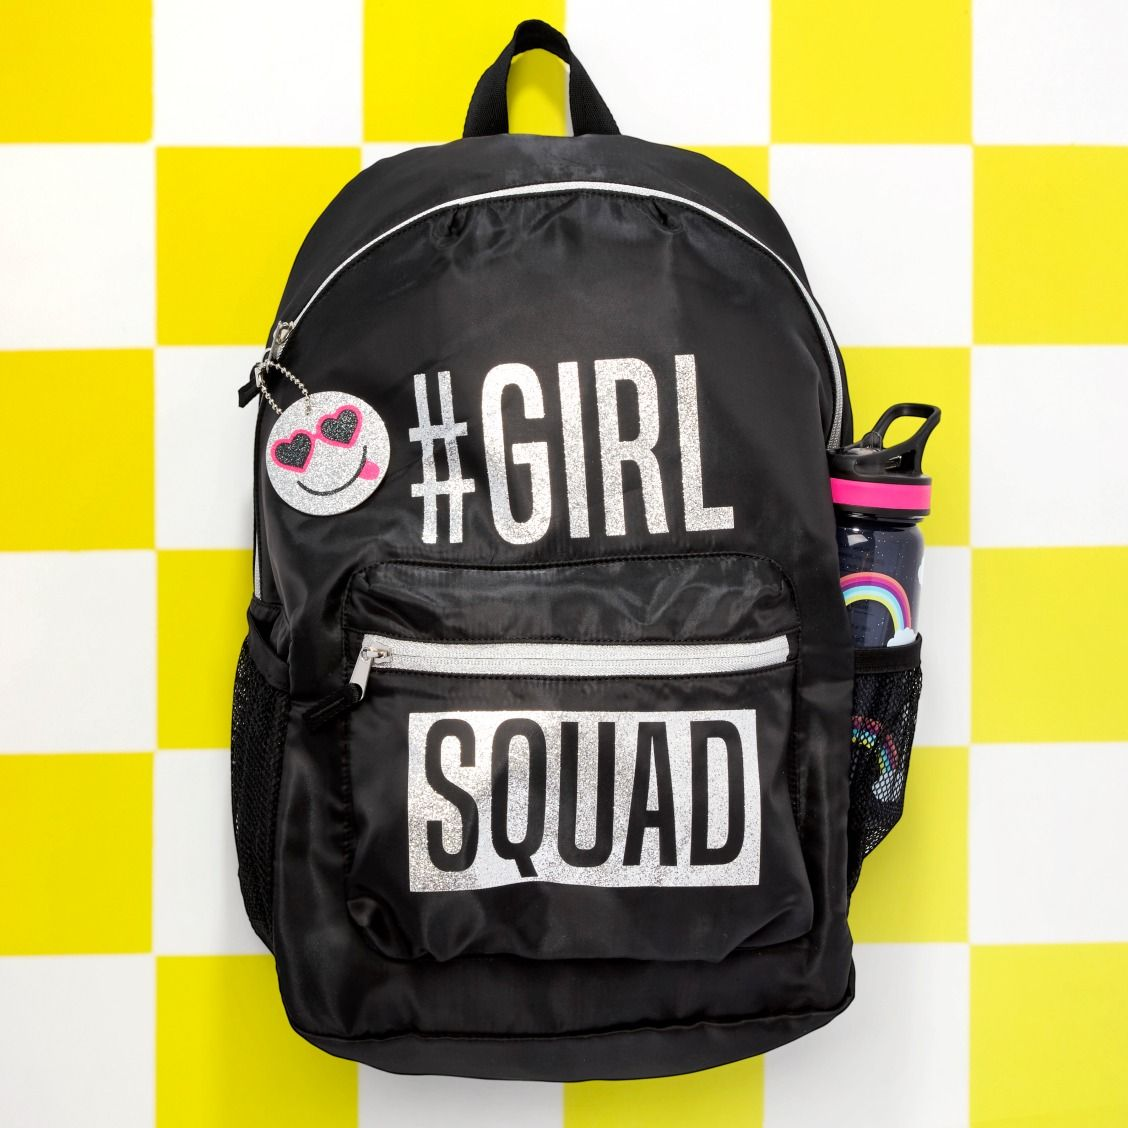 8a8372622bb Girls' fashion | Kids' clothes | #GirlSquad backpack | Back-to-school | The  Children's Place